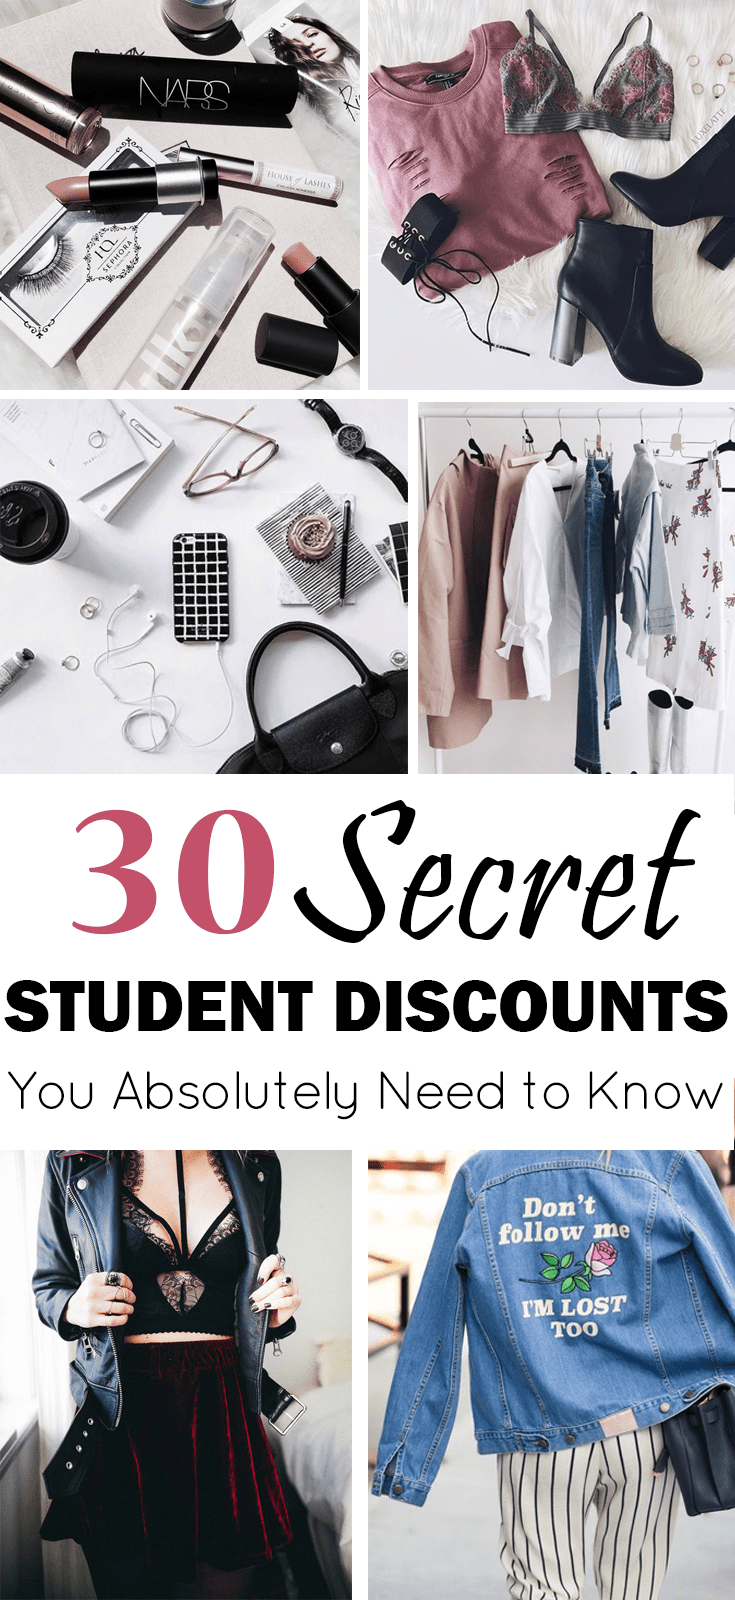 Tons of secret student discounts that you absolutely need to know about right now! Amazing discounts on clothing, electronics, shoes, travel and more!